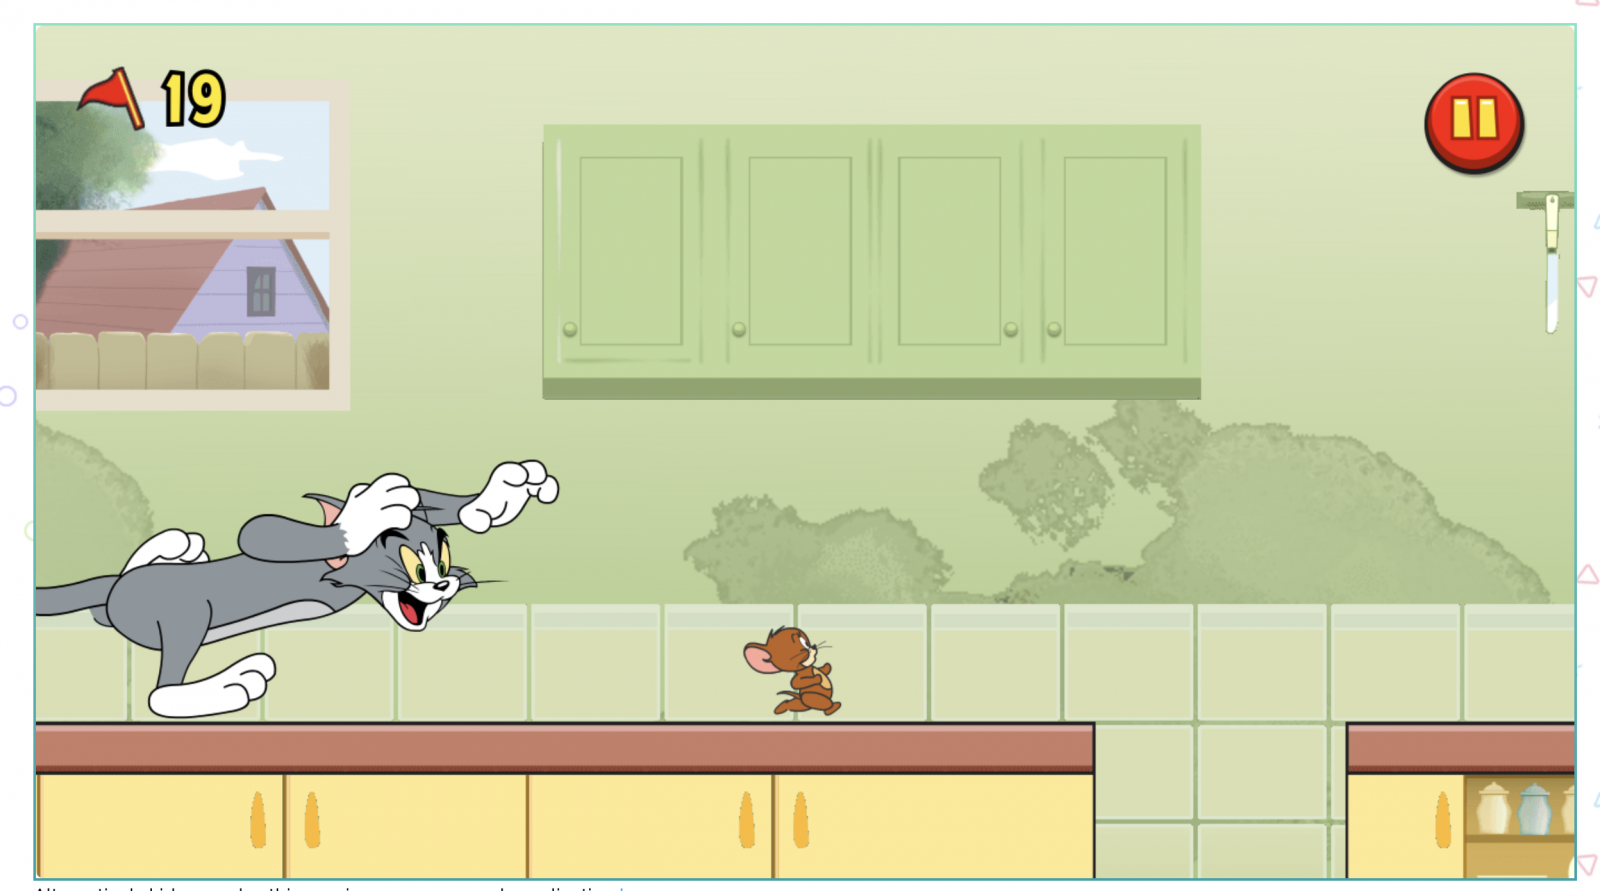 plays.org tom and jerry online game